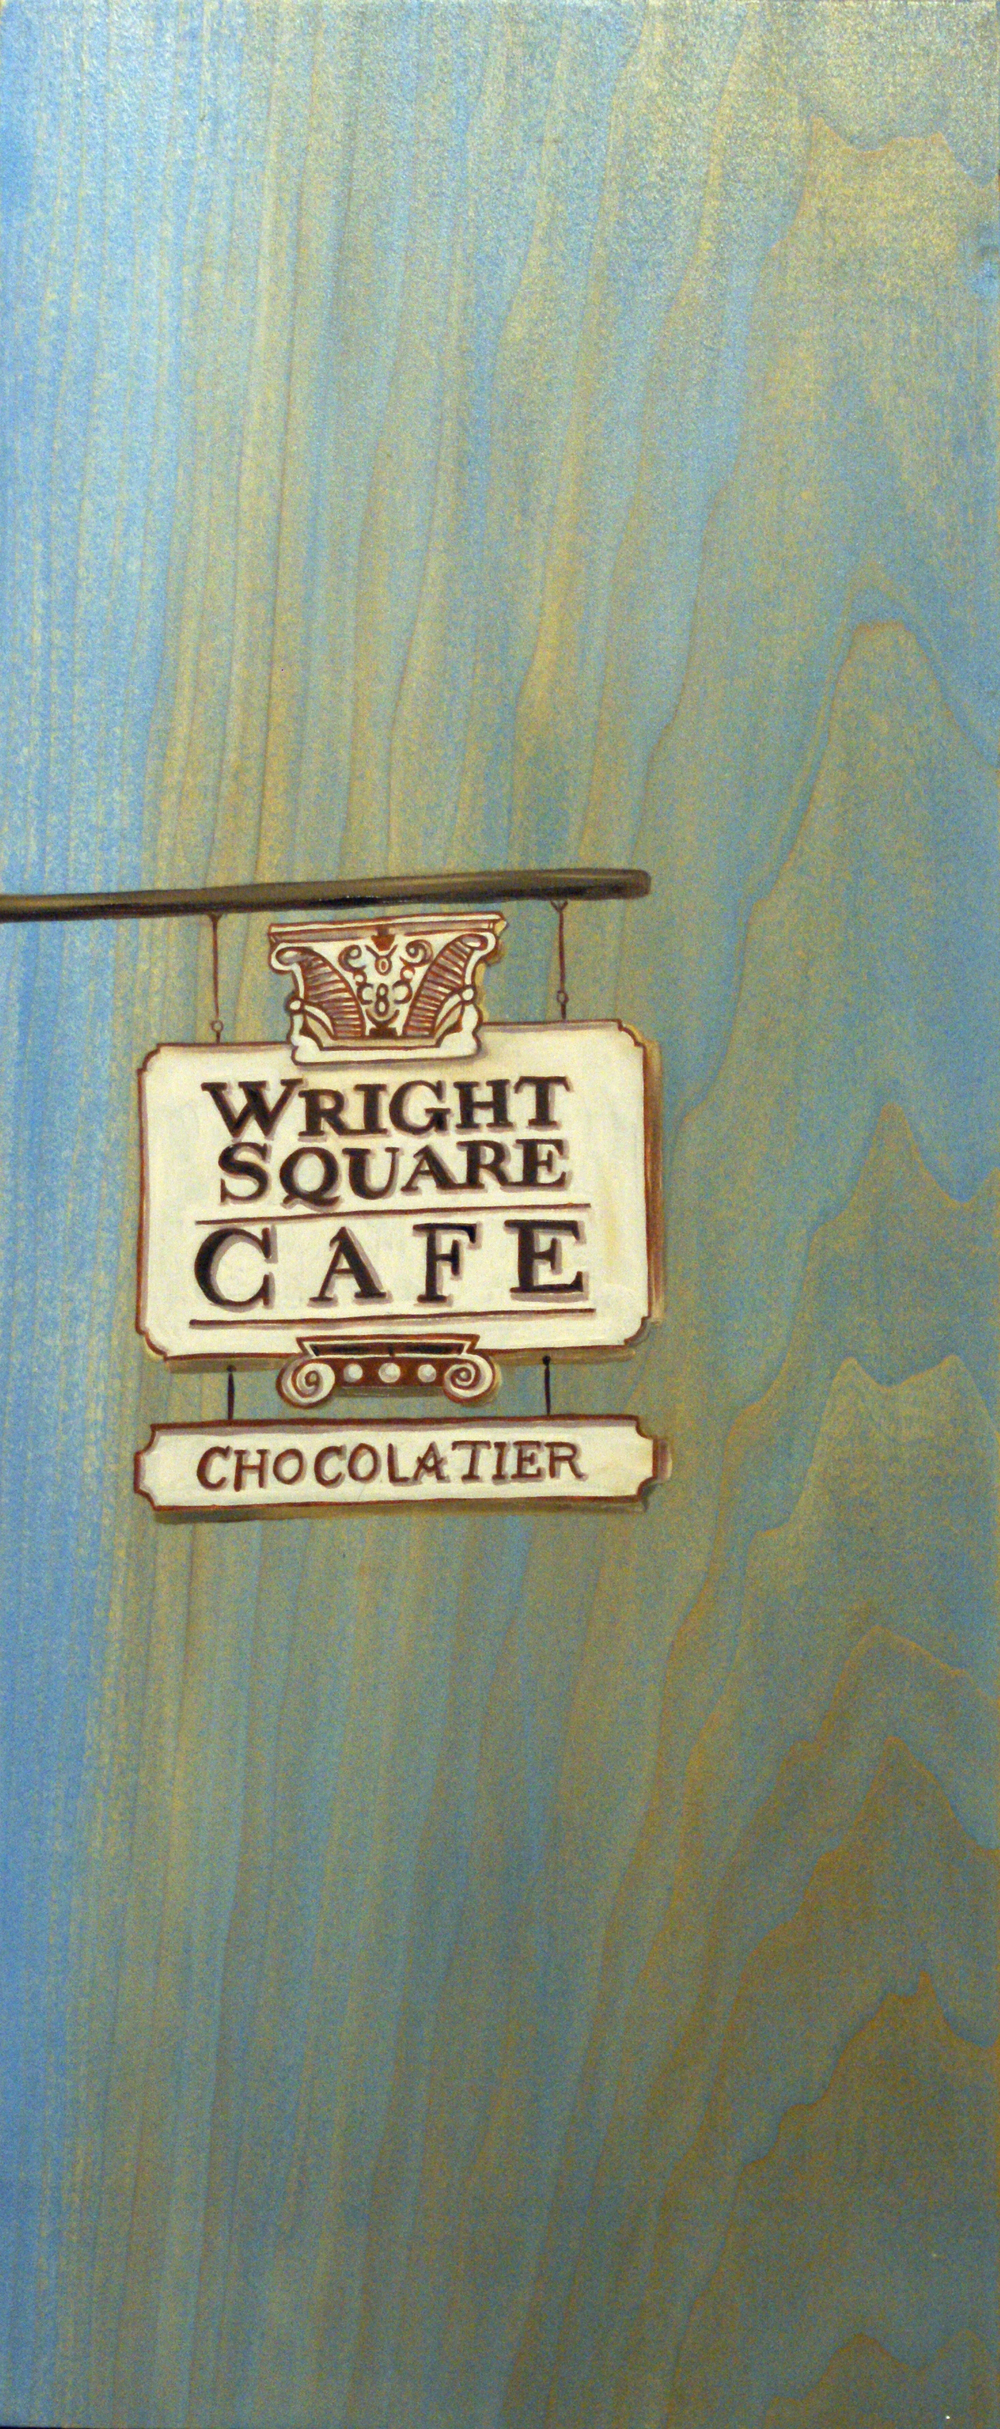 "Wright Square Cafe, 18"" x 8"", oil and acrylic on wood, 2011"